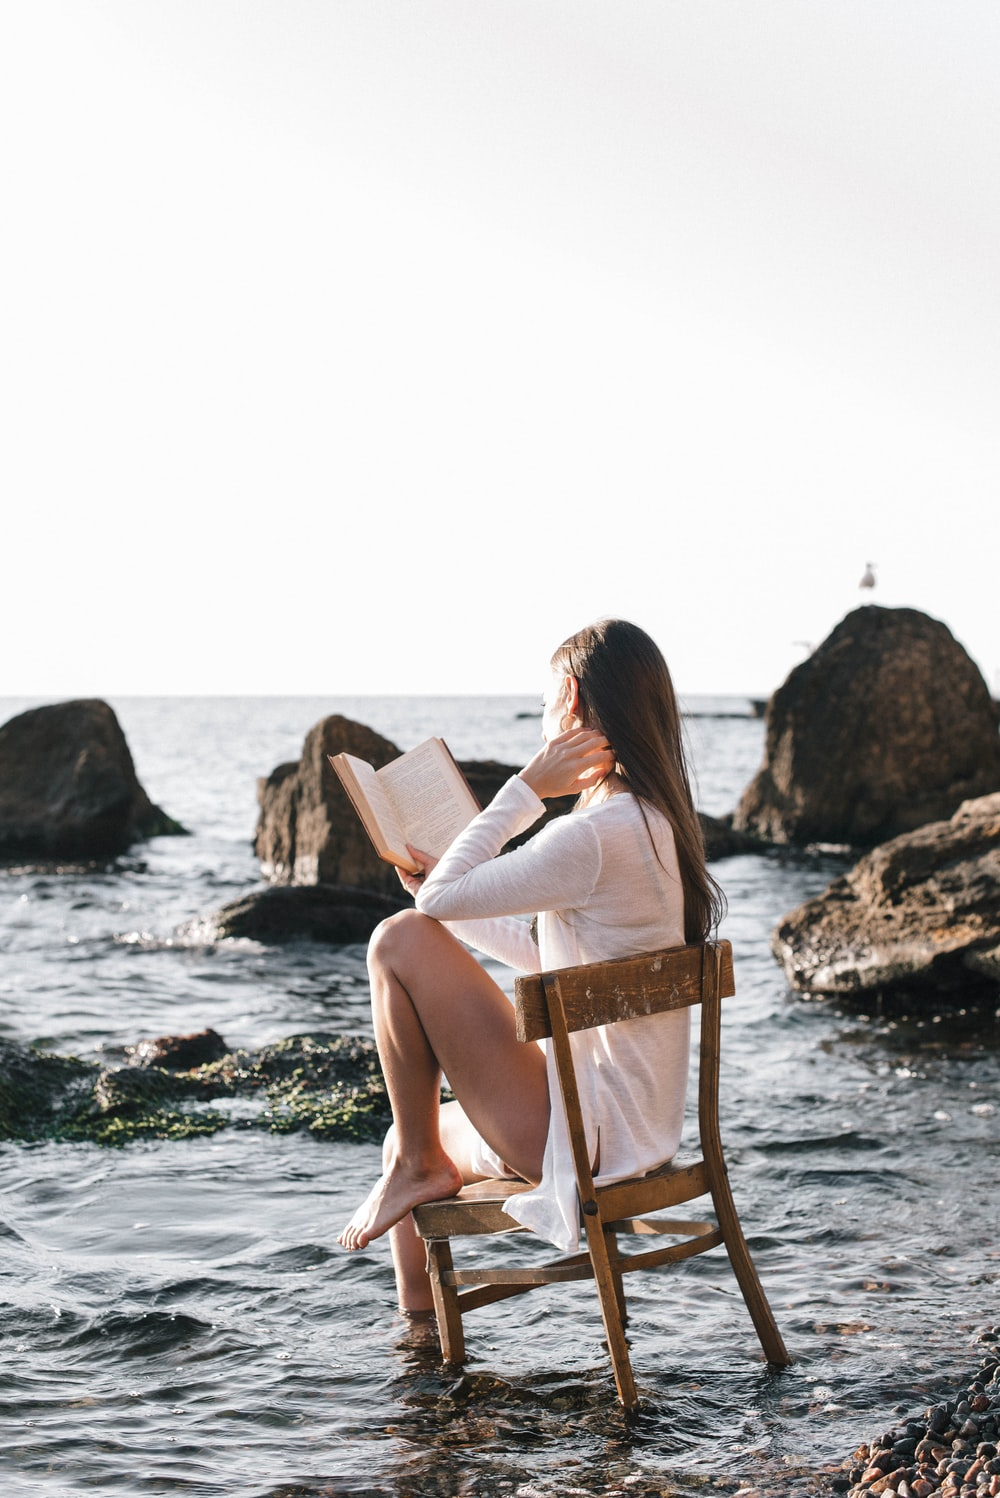 woman in white dress sitting on brown wooden chair reading book on beach during daytime